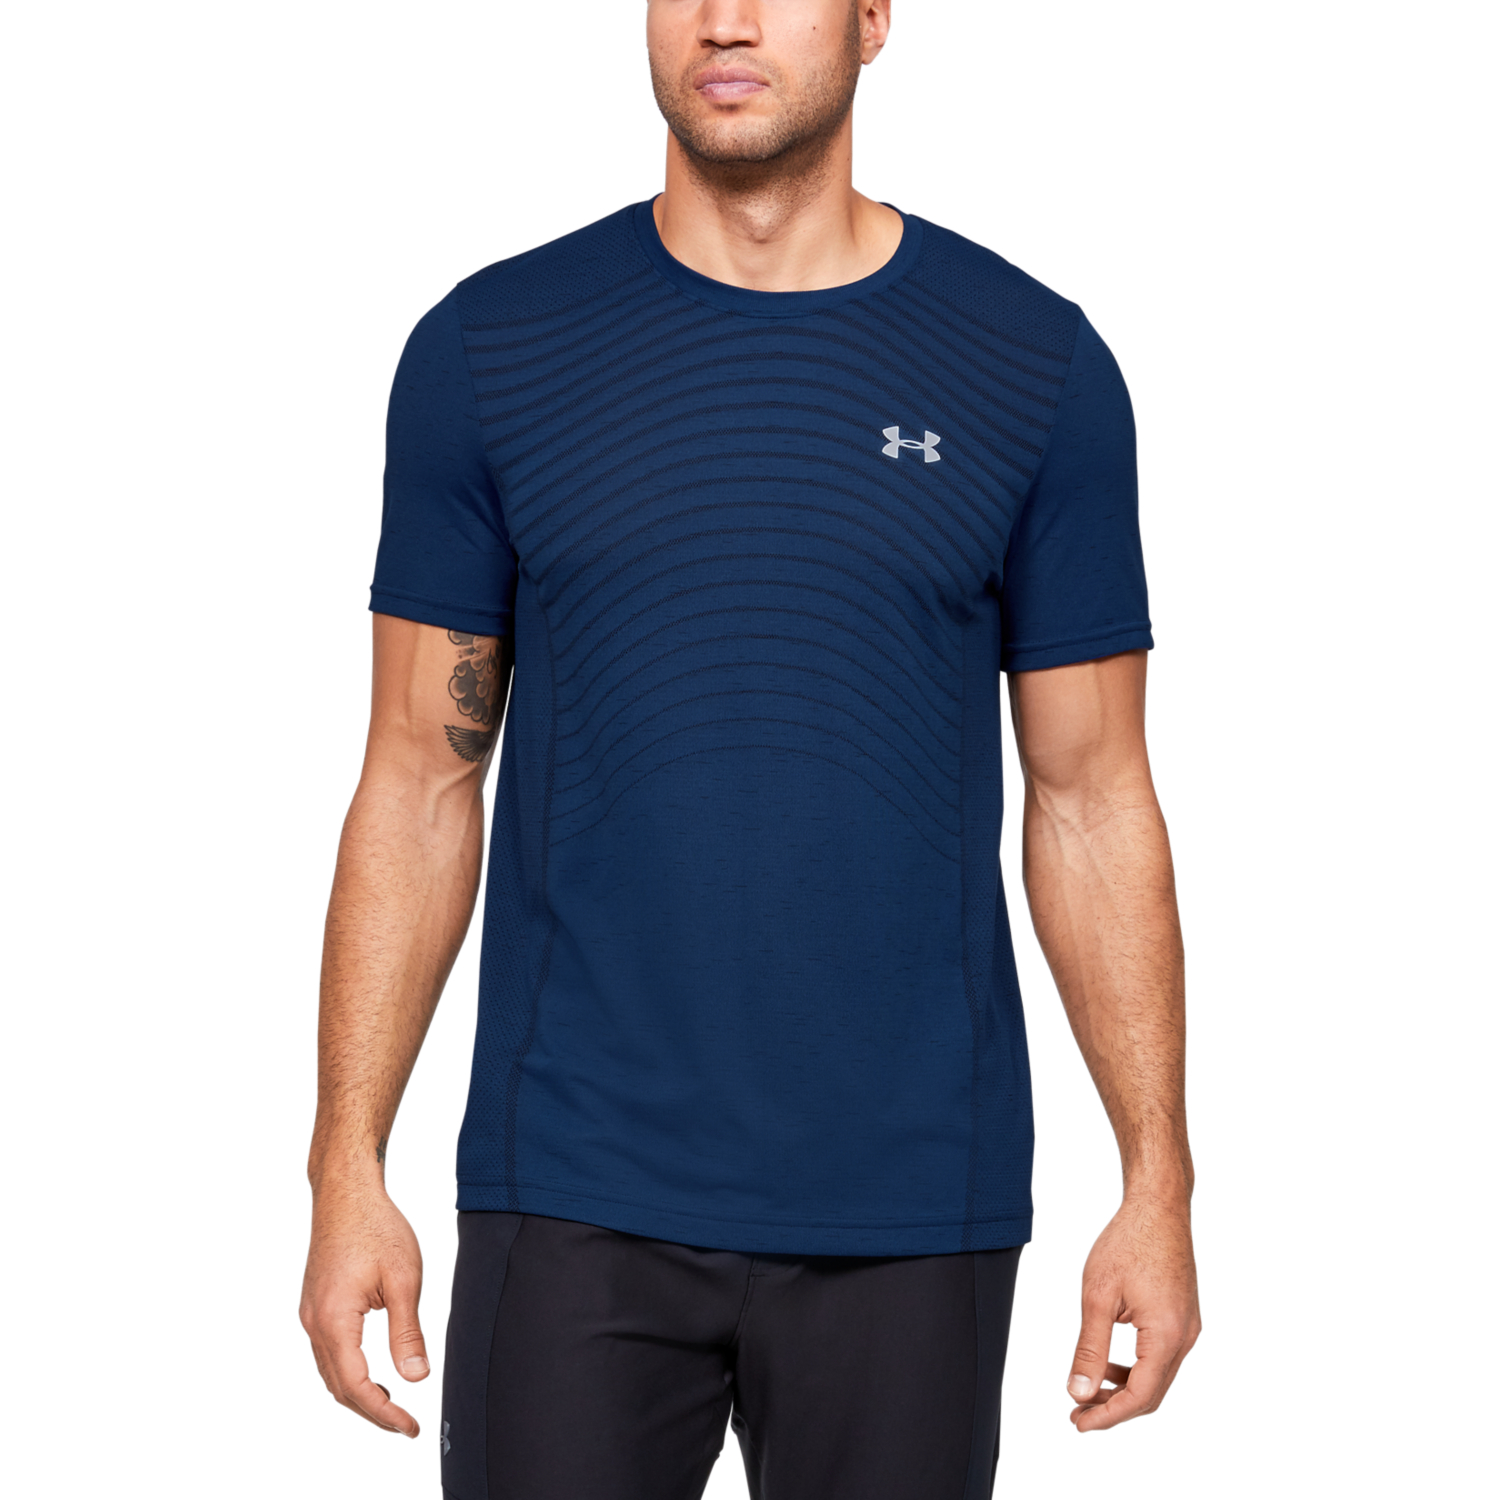 Under Armour SEAMLESS WAVE SS, muška majica za fitnes, plava